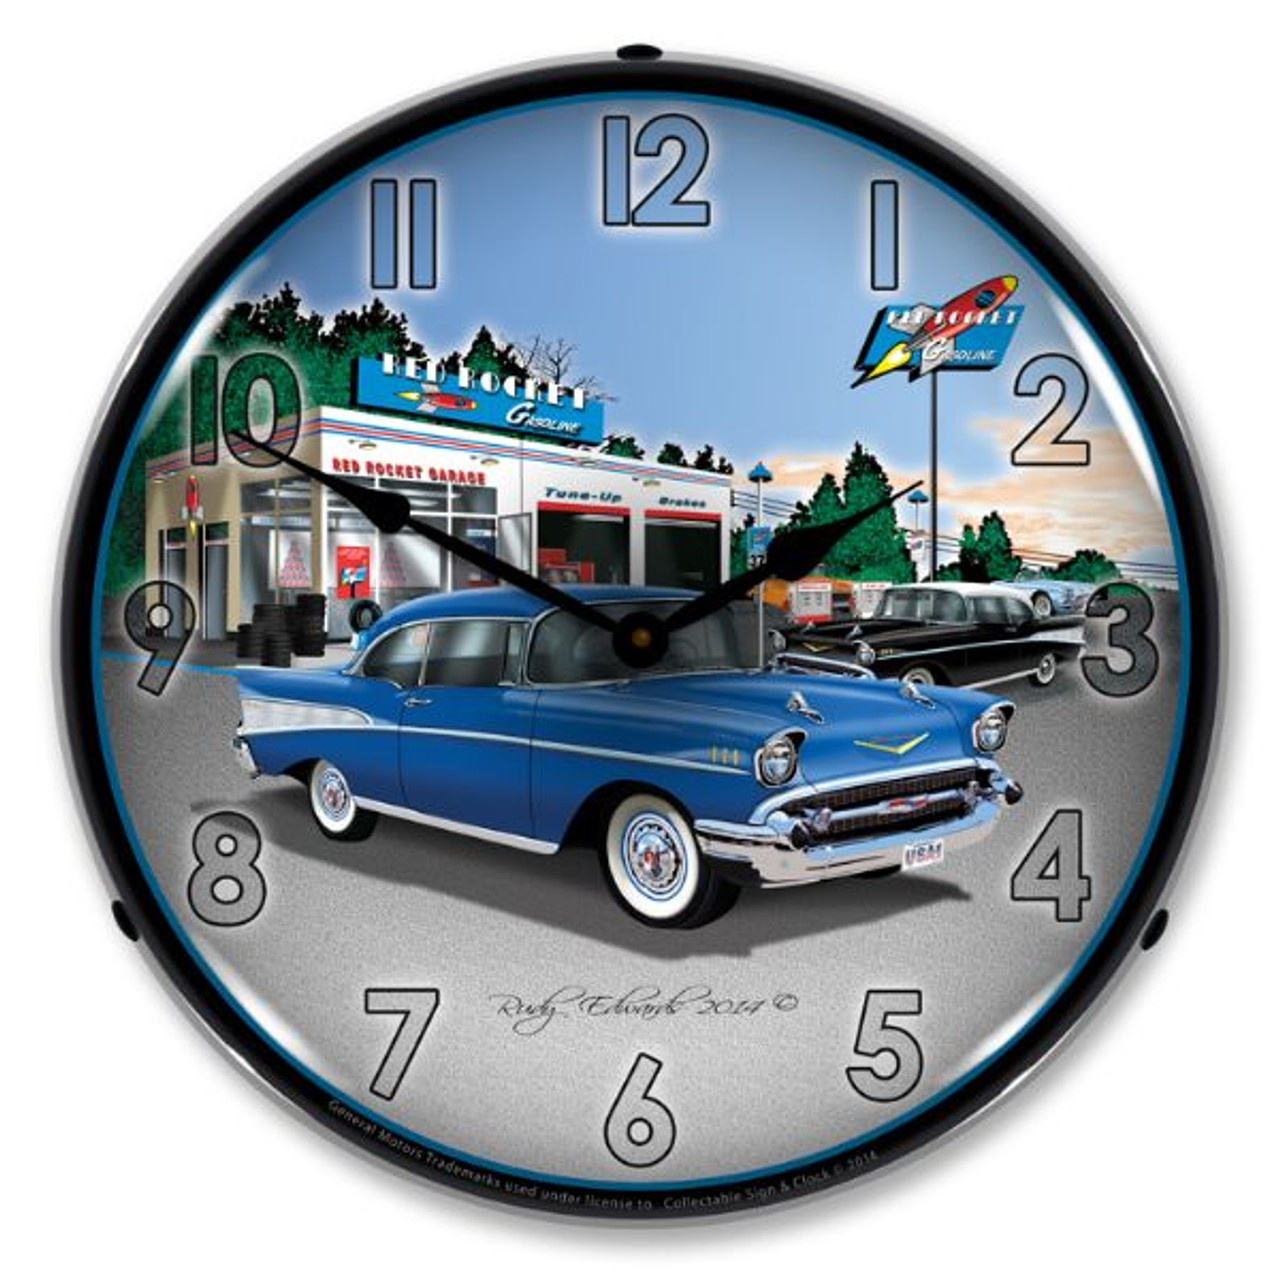 1957 Bel Air Rocket Gas Lighted Wall Clock 14 x 14 Inches